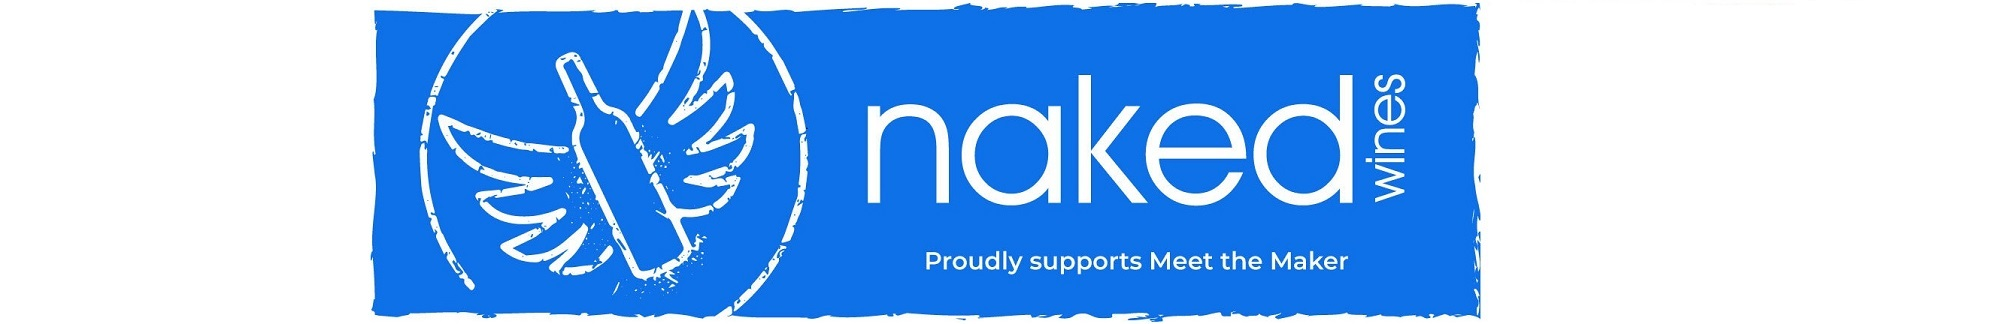 Meet_the_Maker_logo_Naked_Wines_1020.jpg?mtime=20201026125323#asset:471013